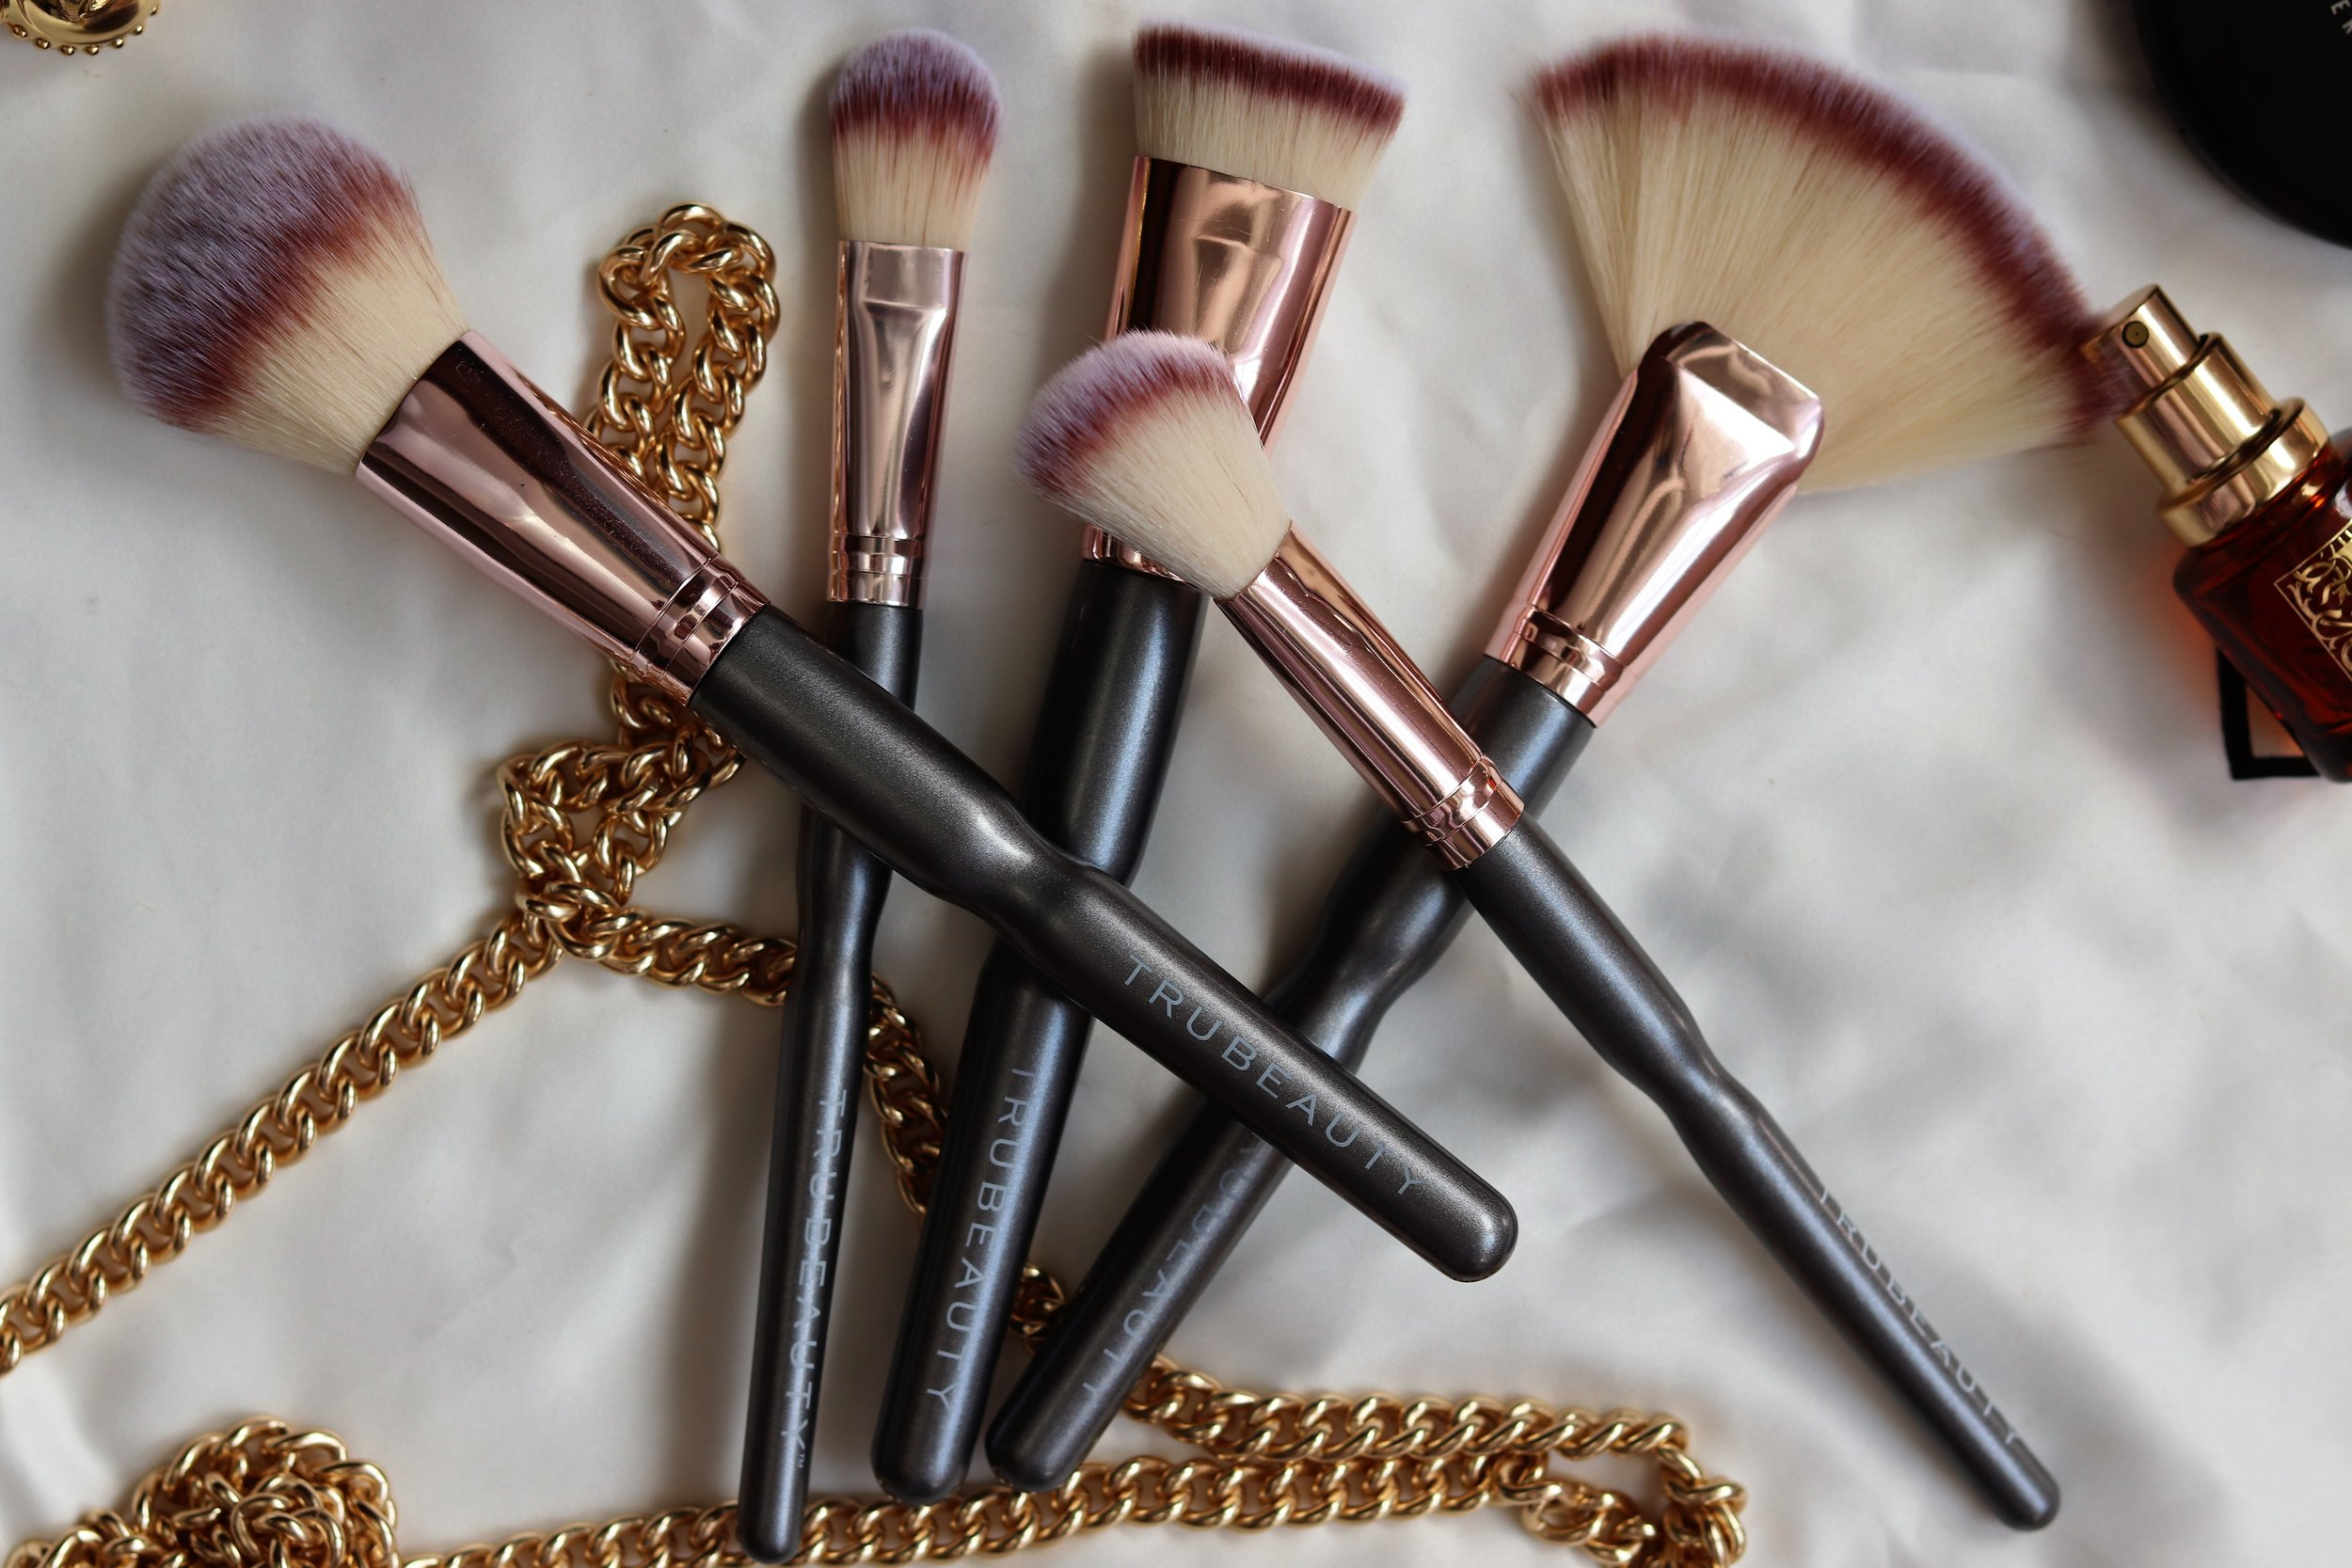 Trubeauty pro essentials 5 pc brush collection